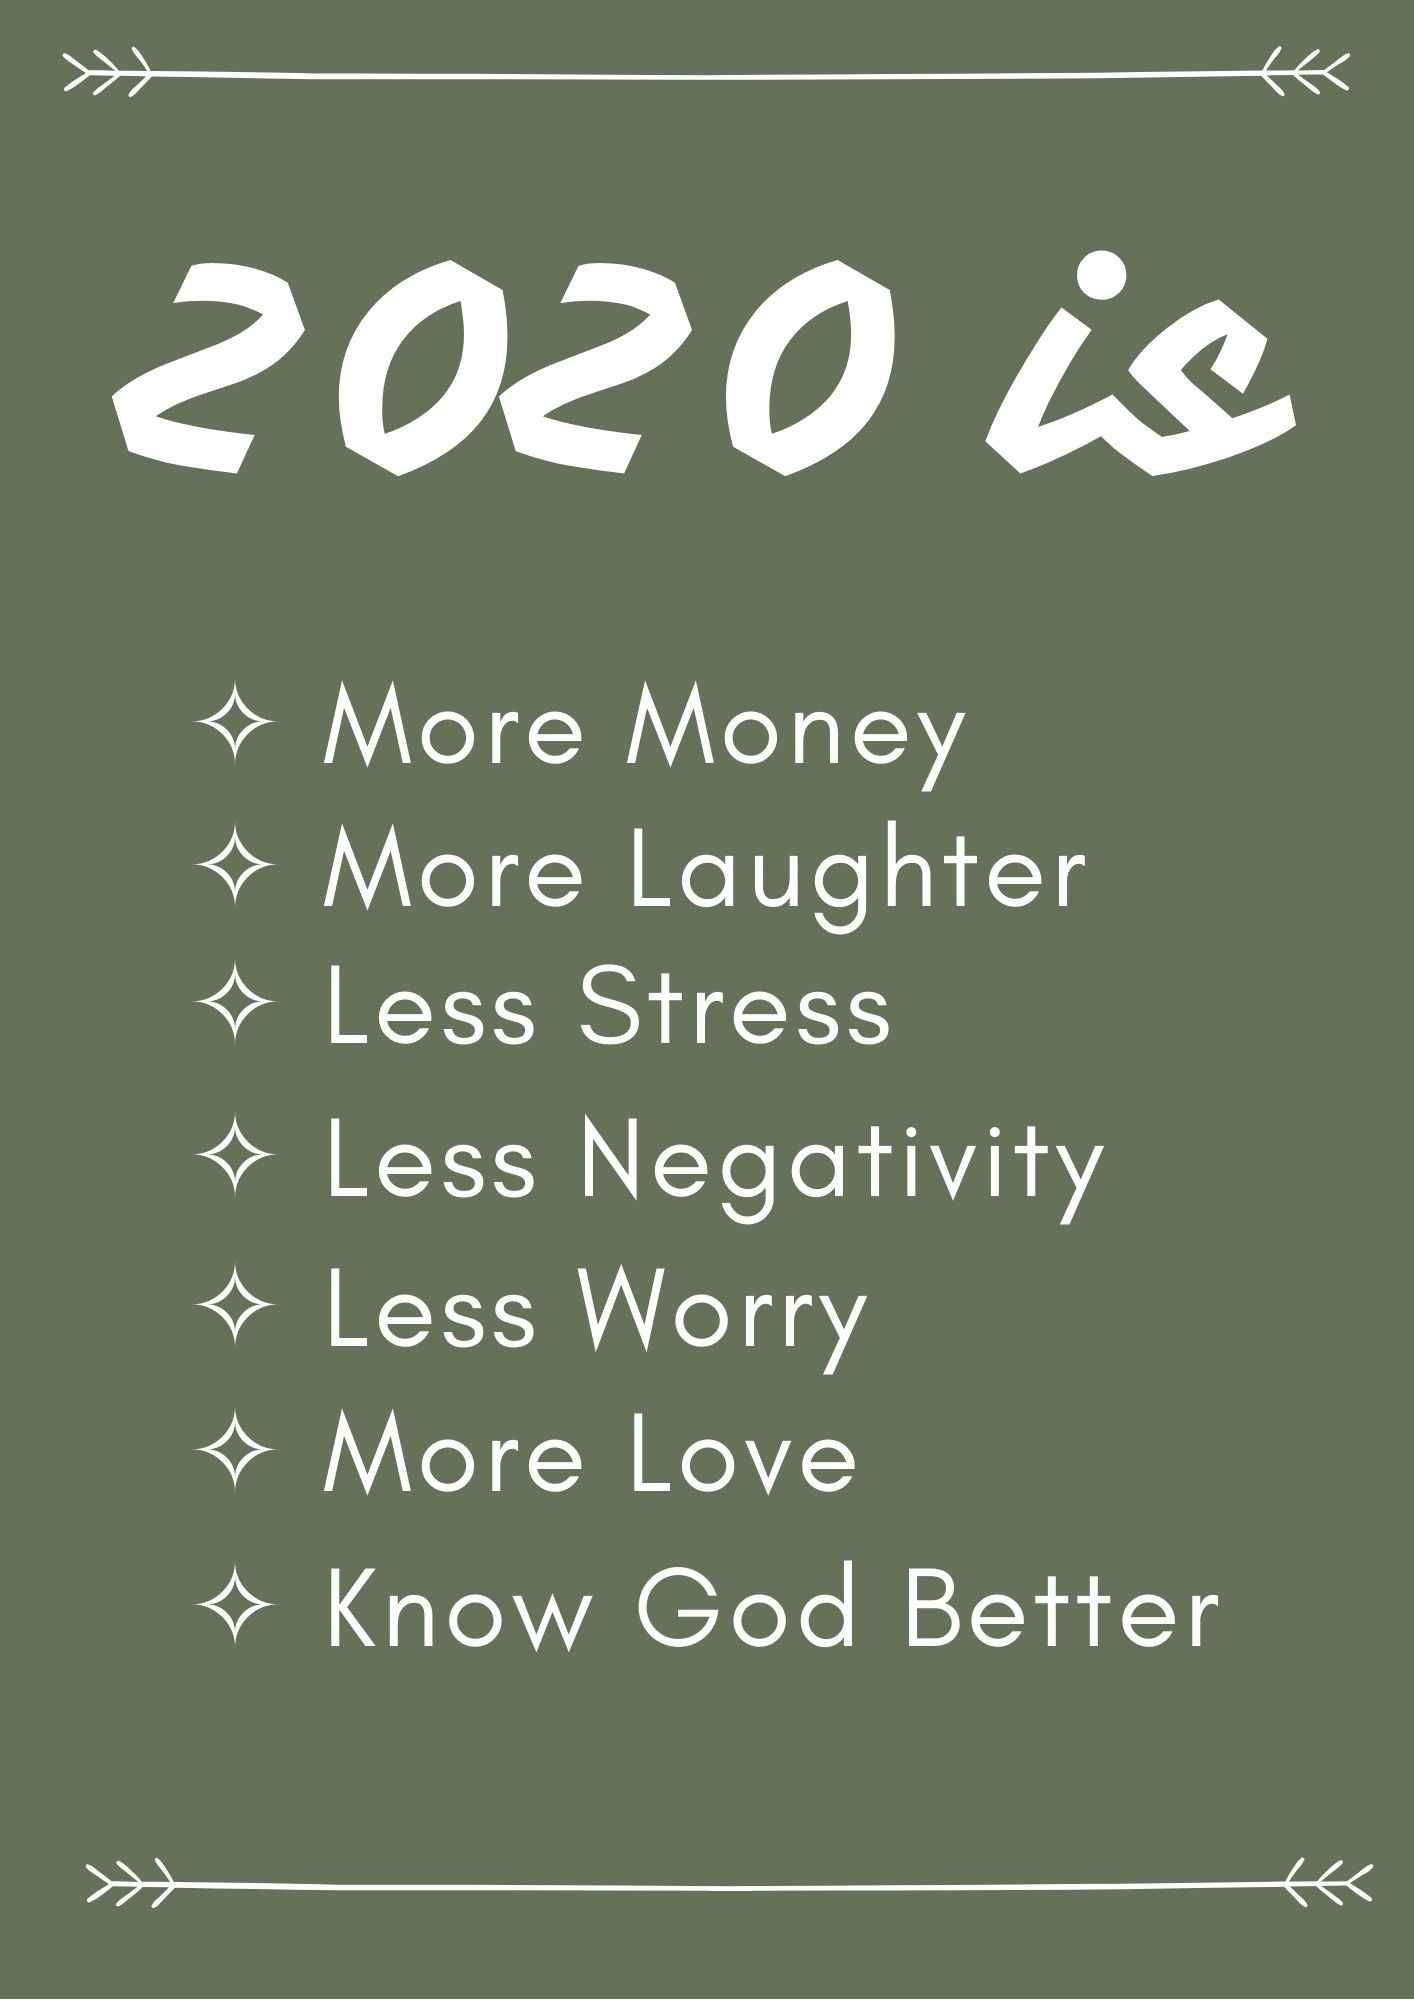 2020 Backgrounds New Years Messages New Years Instagram Captions Quotes About New Year New Year Message Quote